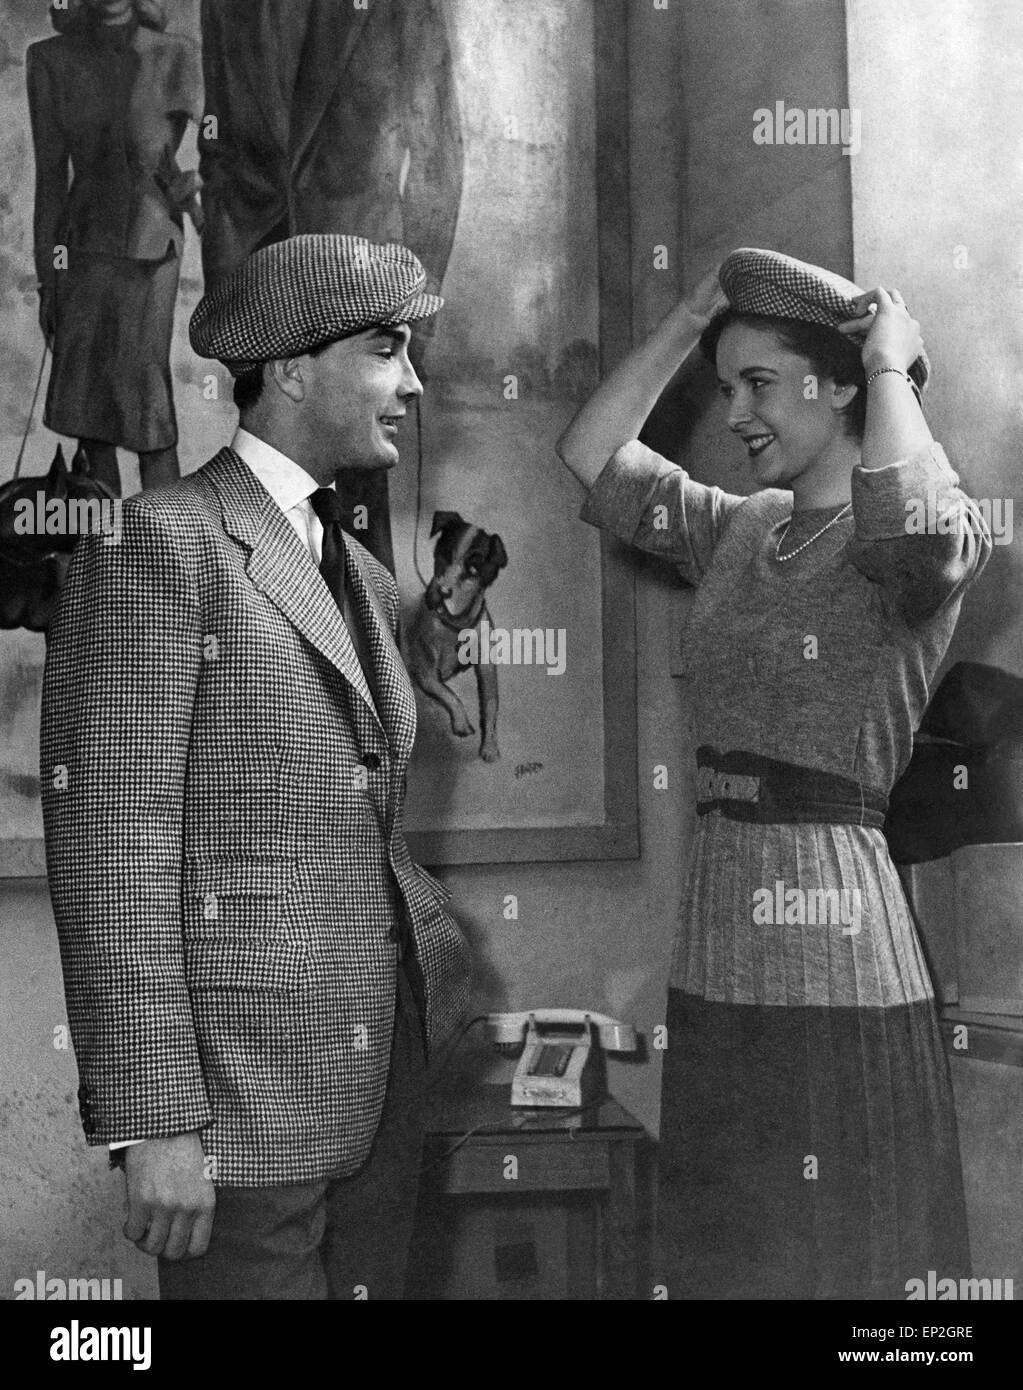 Clothing Fashion 1940s. Man Wears Hat. Models, Gayna Bright 17, and John Kylie, wearing tweed hats. - Stock Image